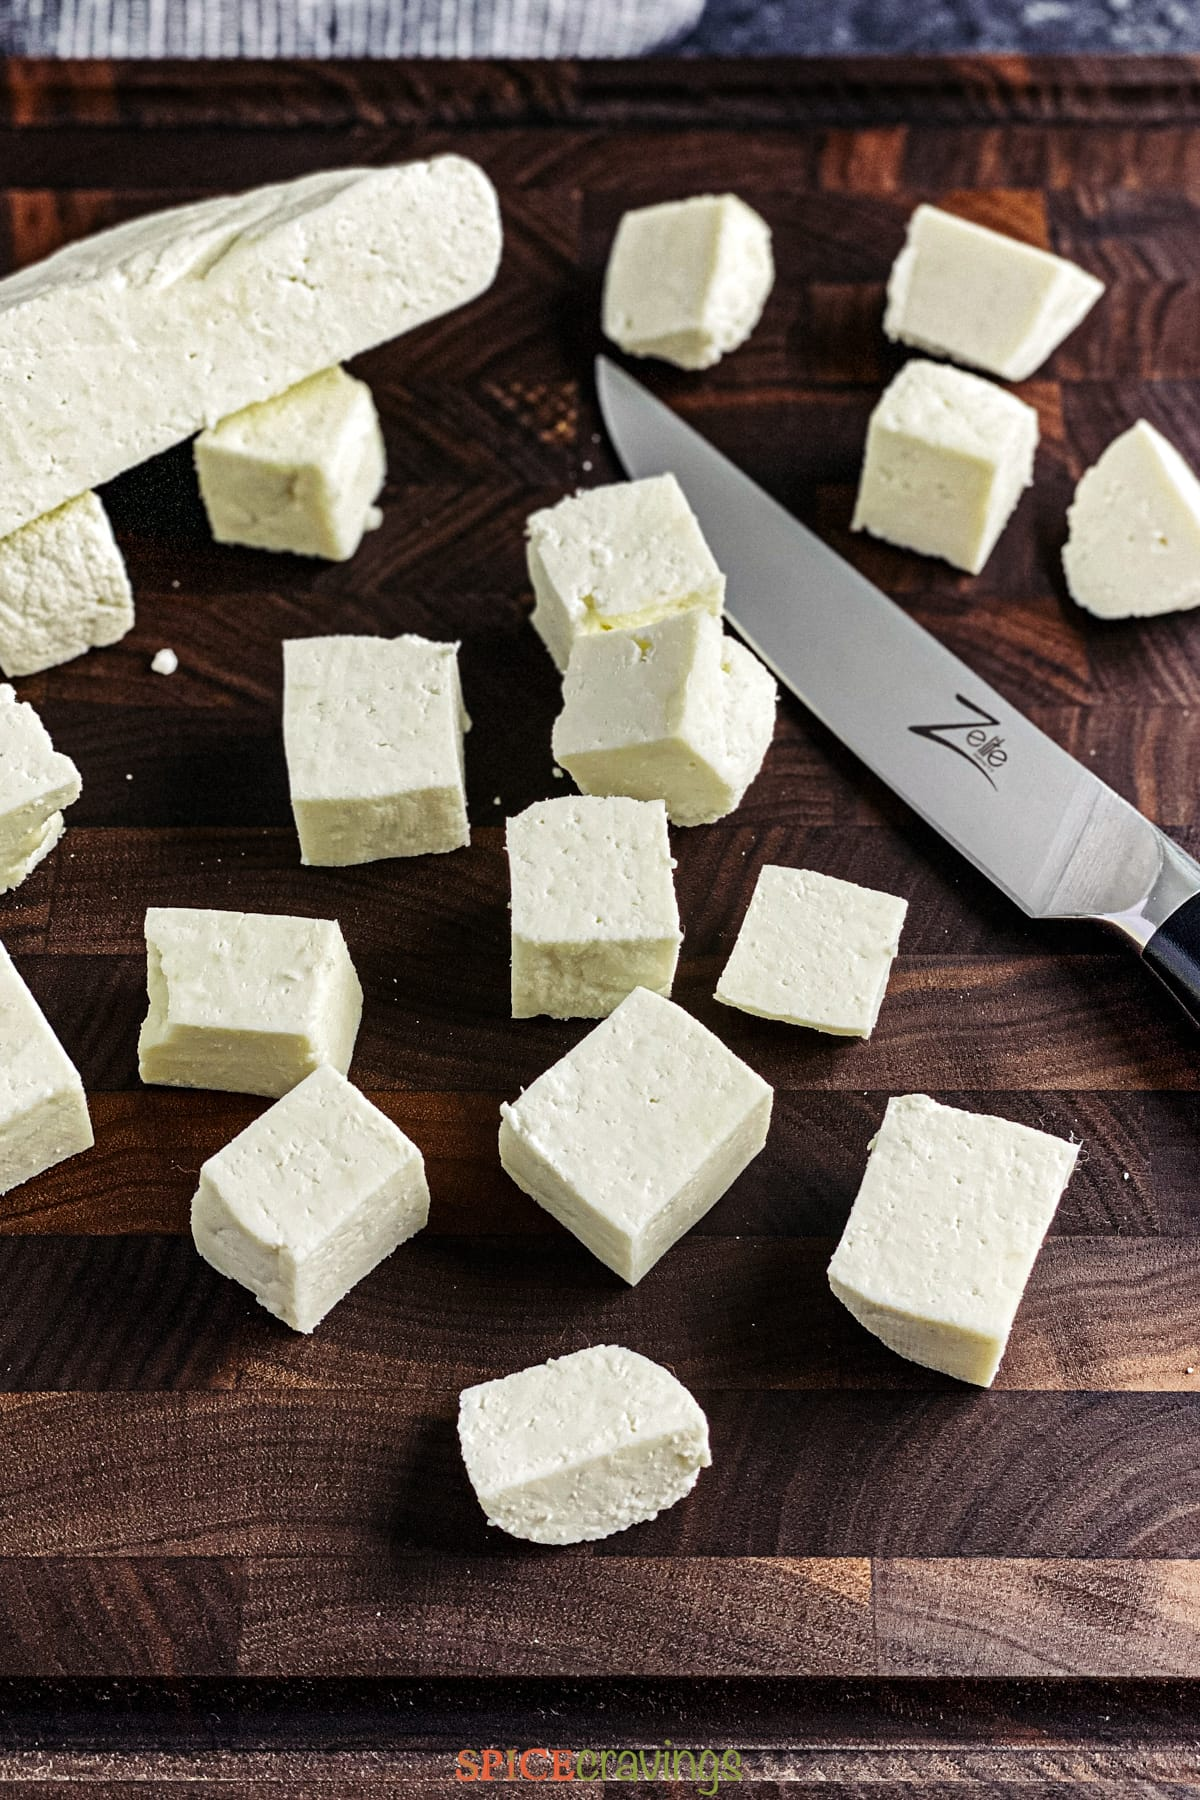 Chopped paneer on a cutting board next to a knife